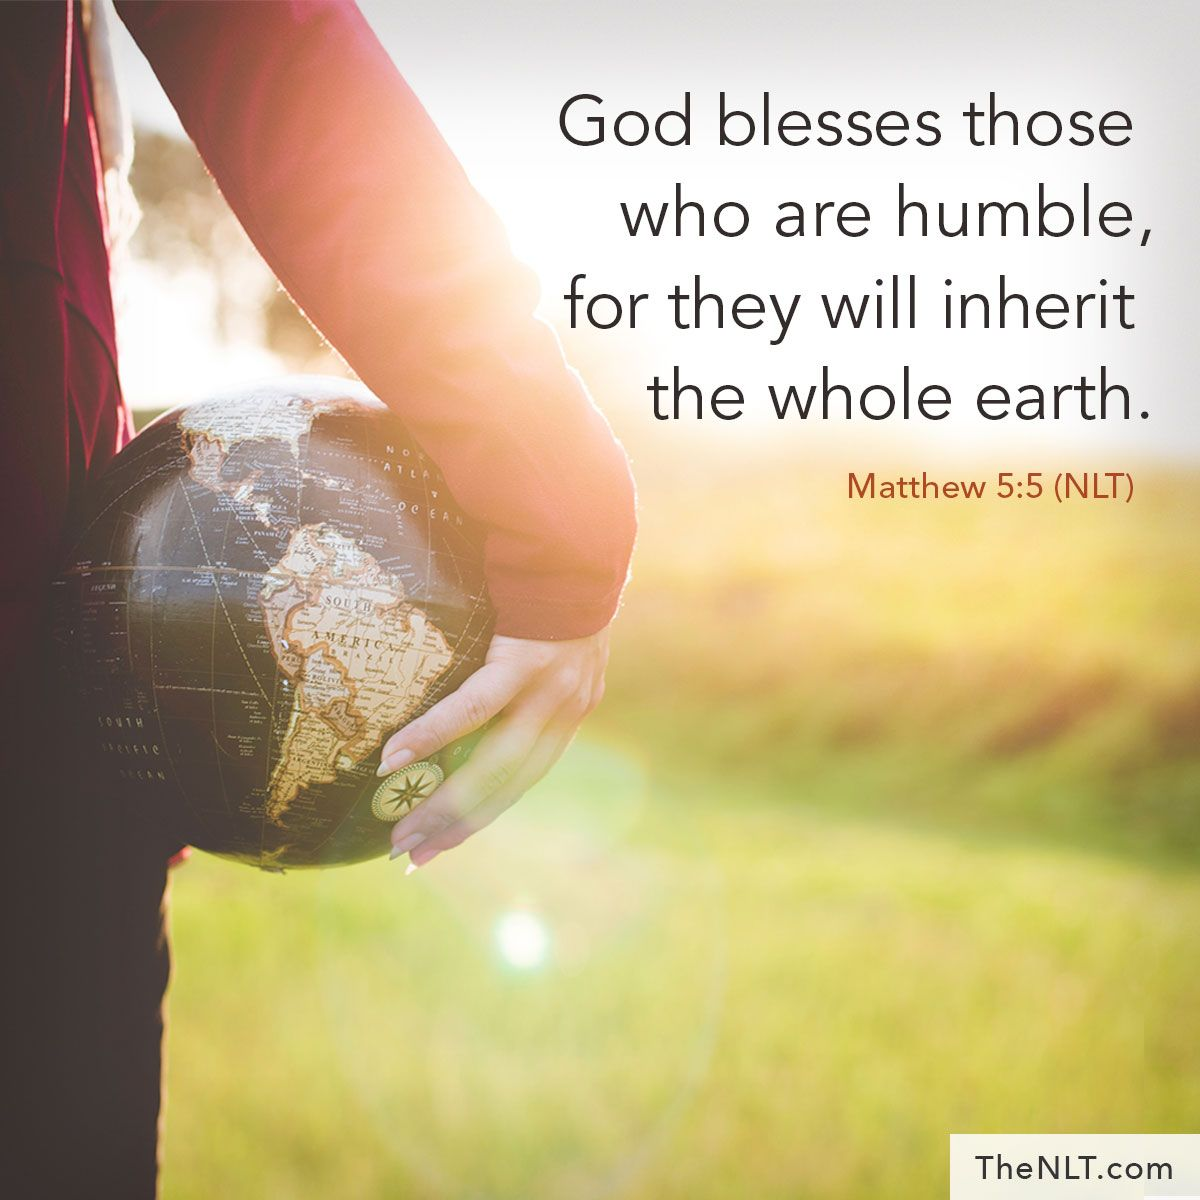 God blesses those who are humble, for they will inherit ...